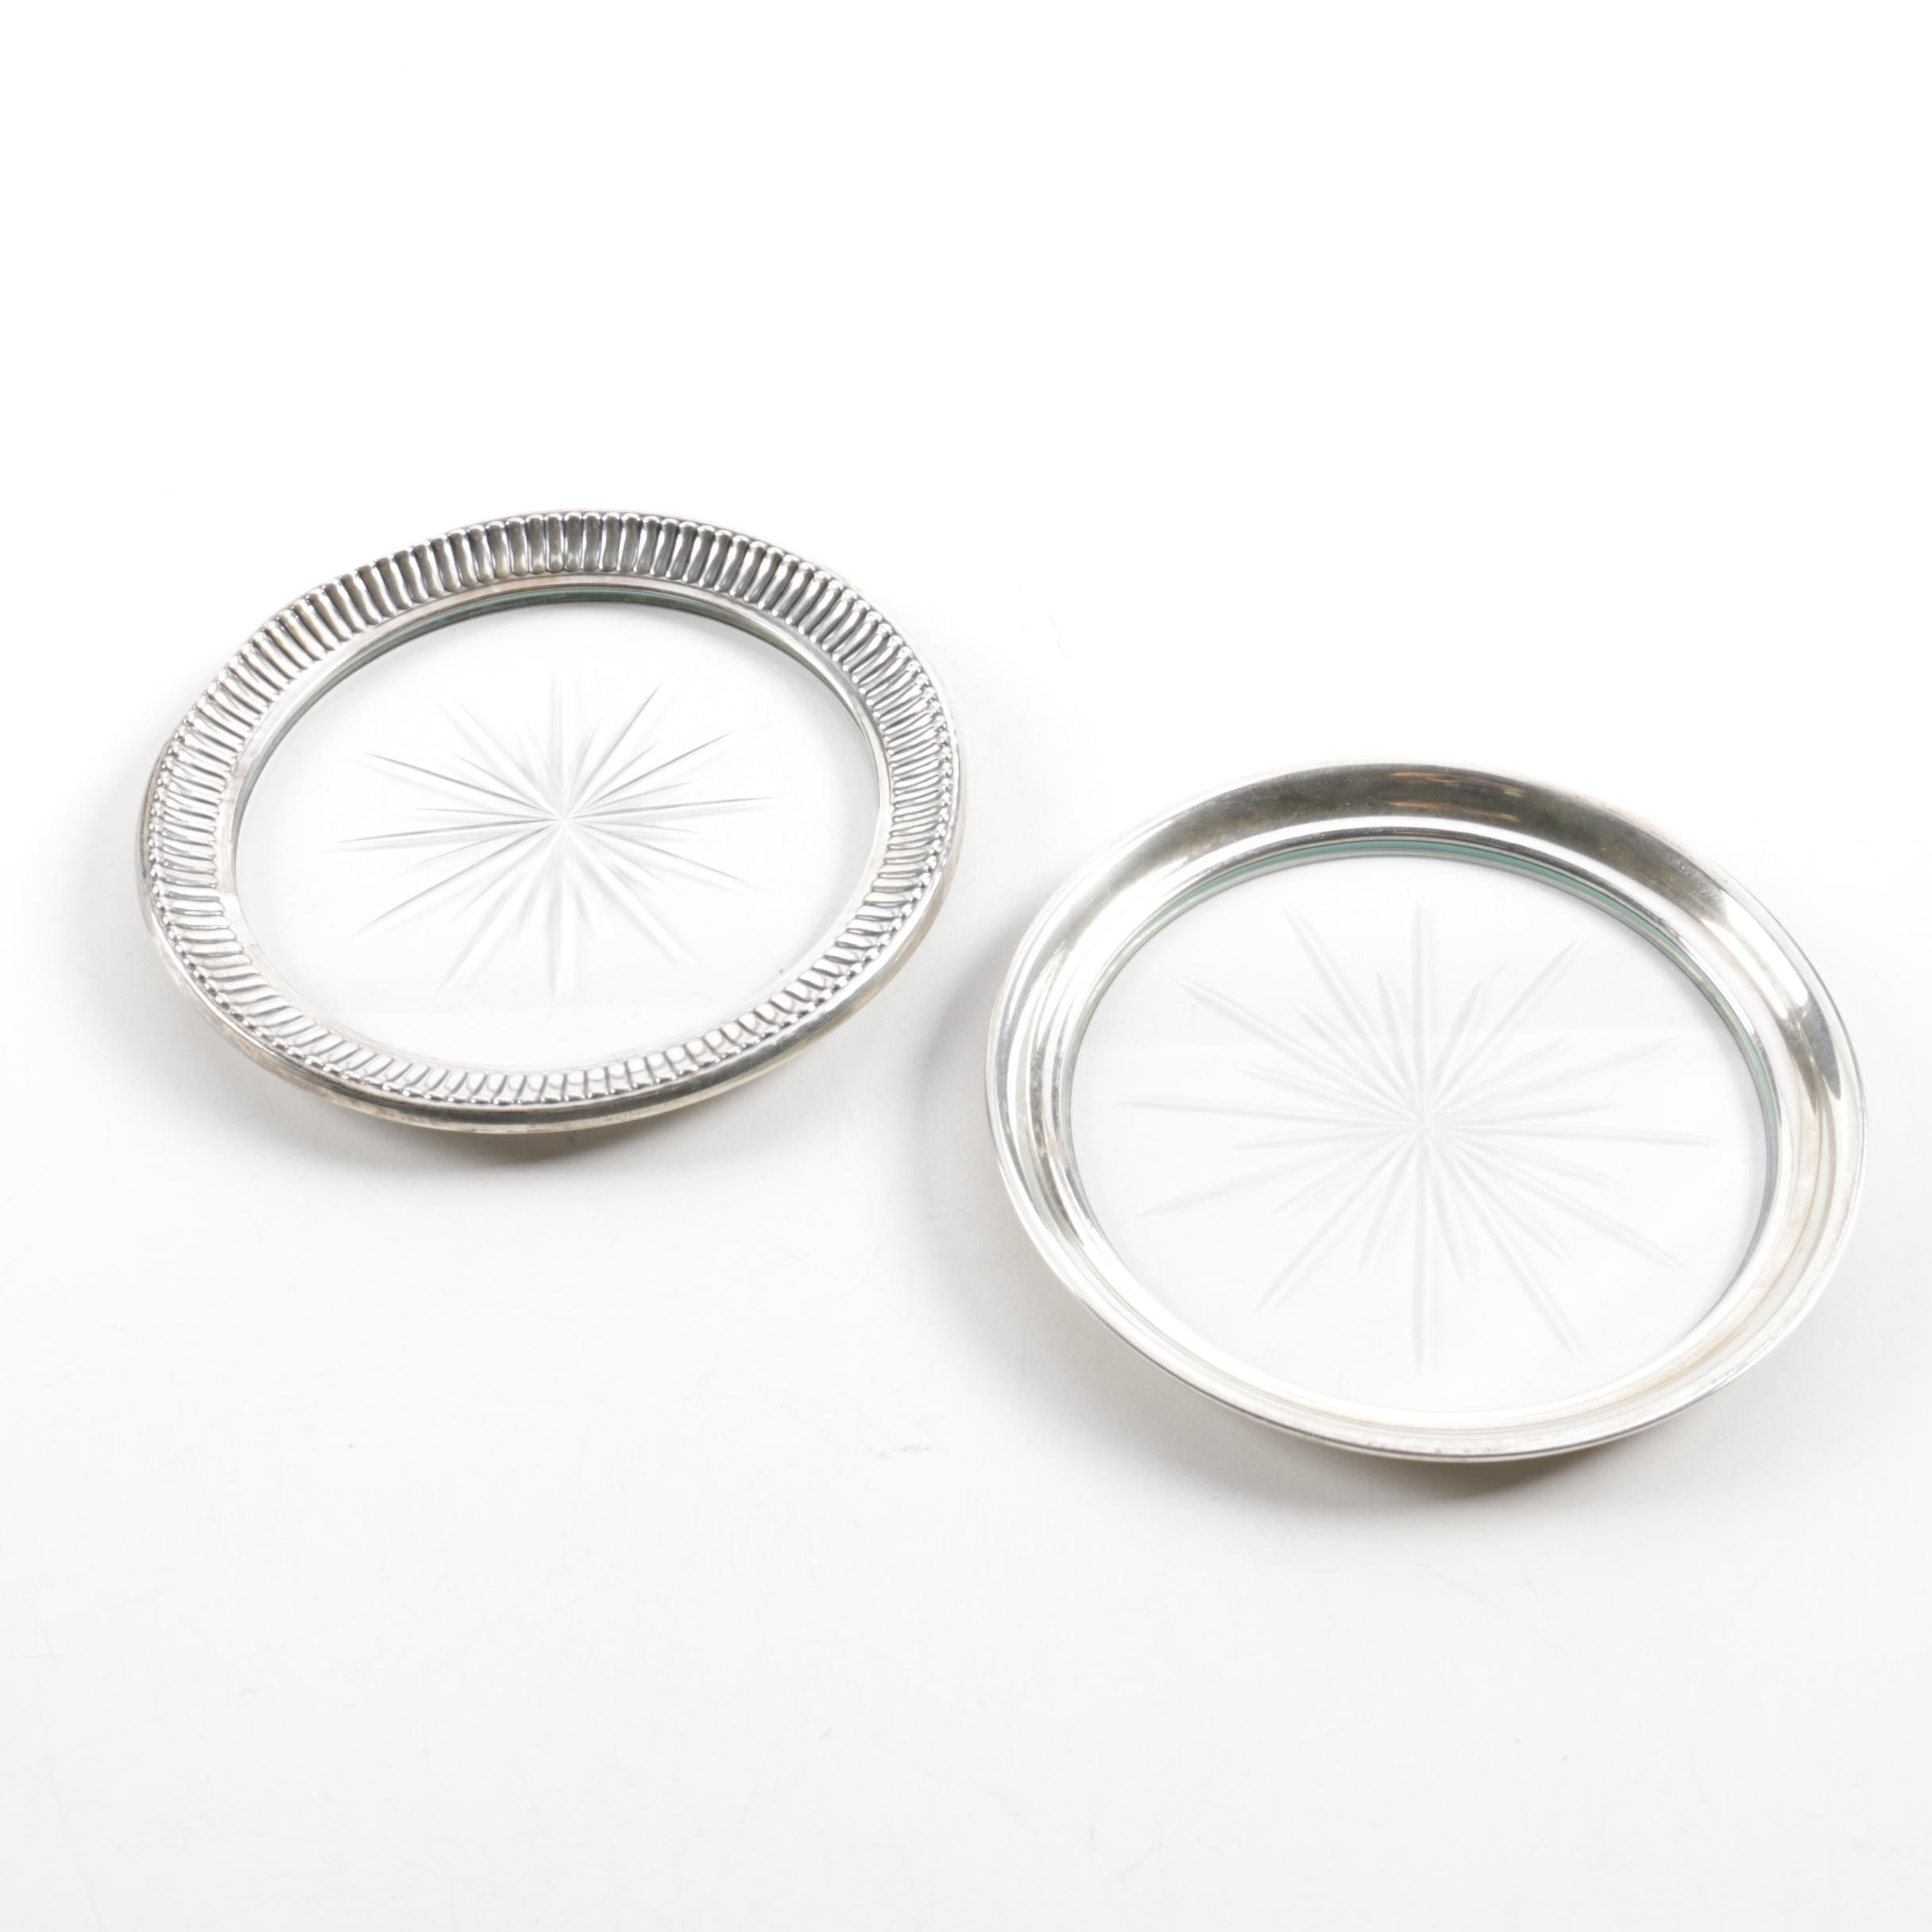 Webster Co. Sterling Silver Rimmed Glass Coasters